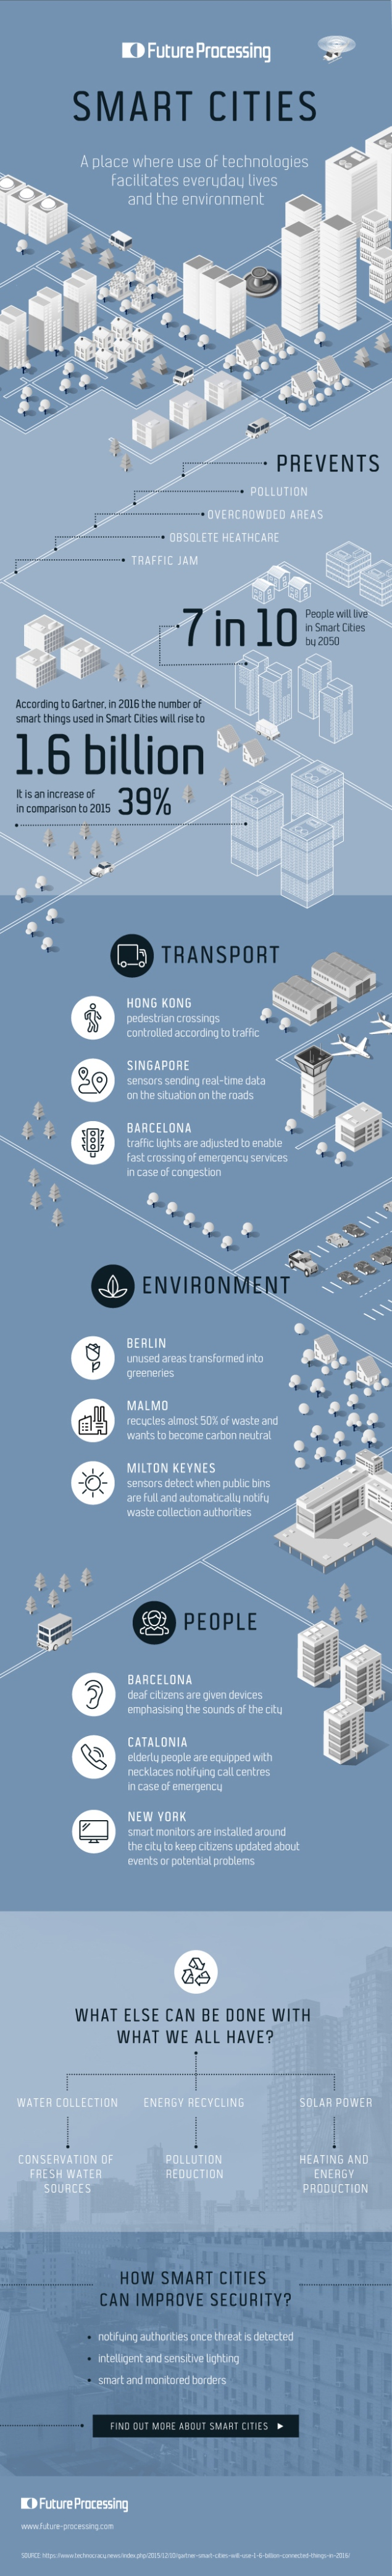 smartcities_infografika-Internet-Of-Things.jpg